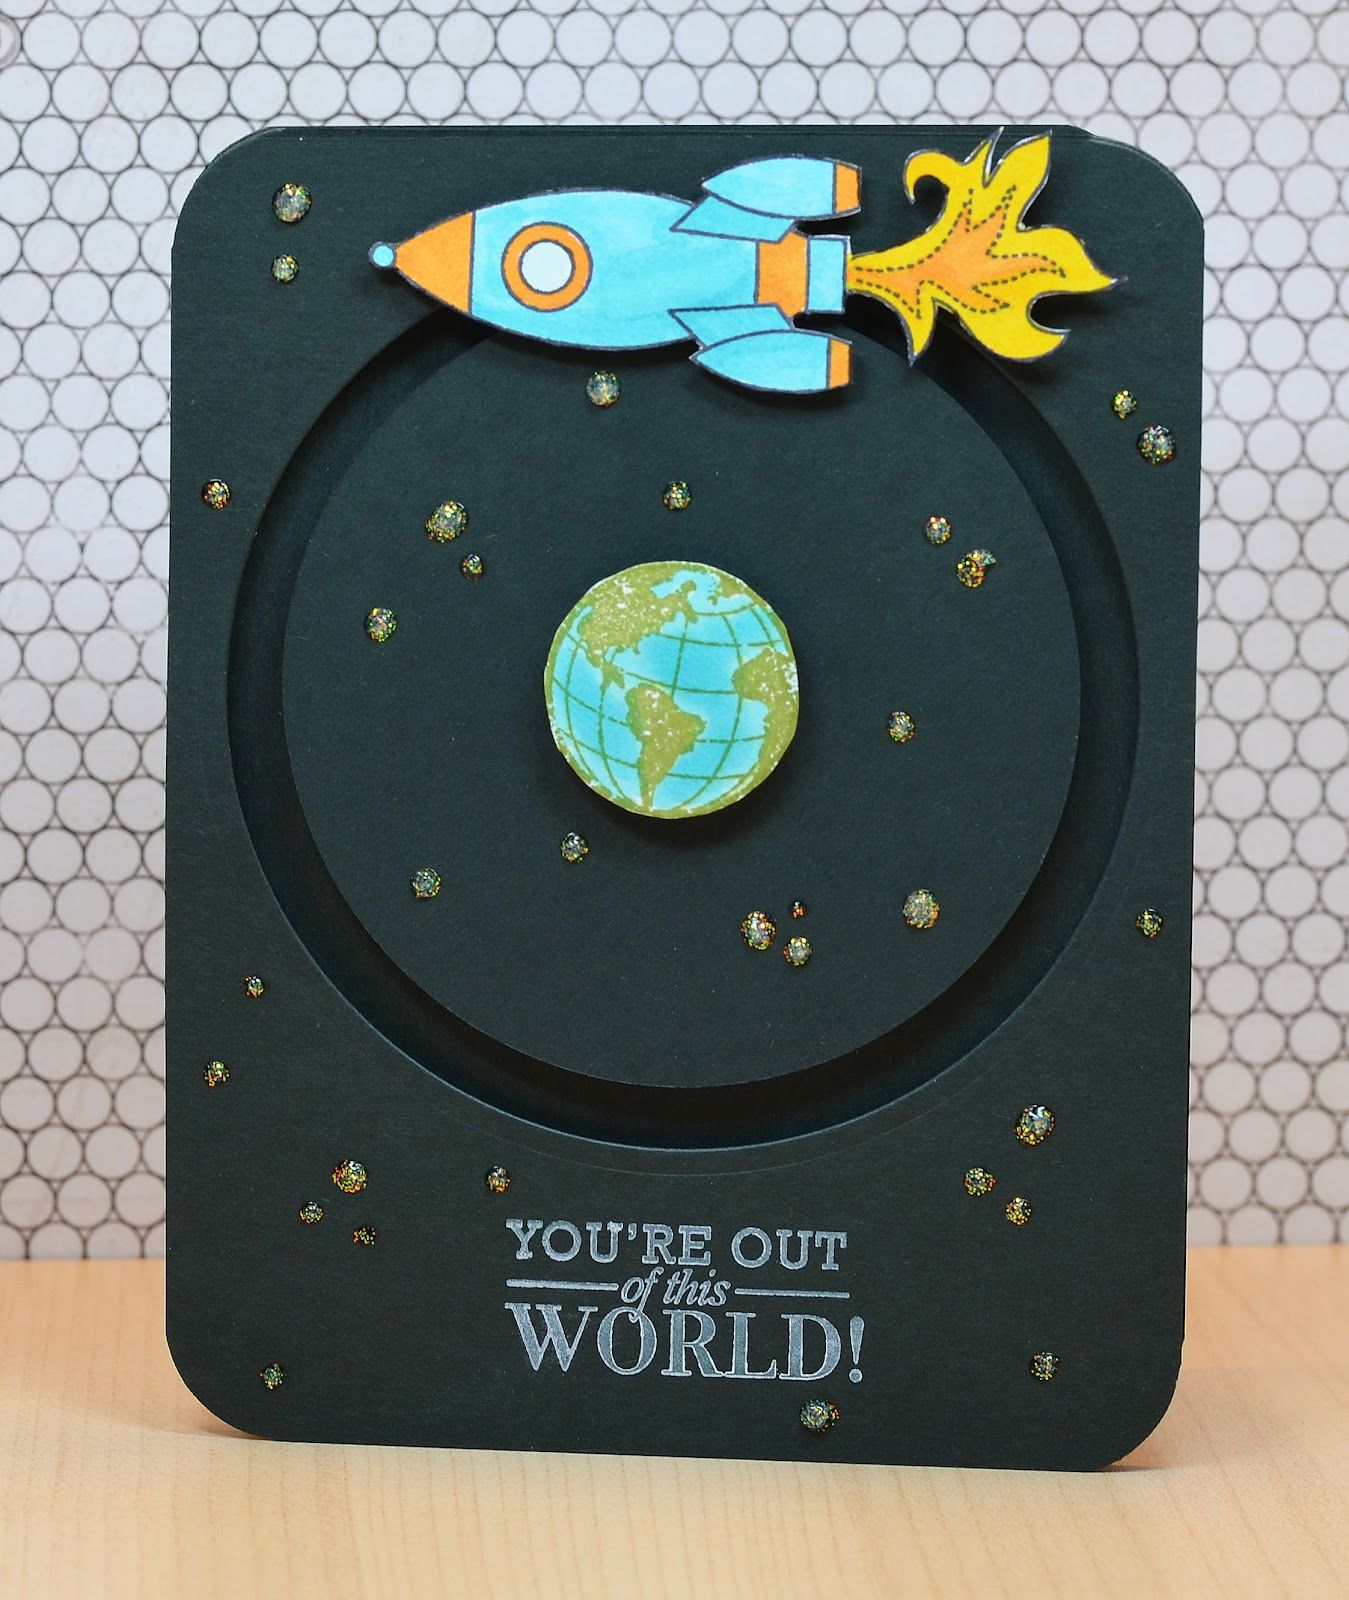 Pin by Carol Feige on Cards: special shapes and designs  Diy